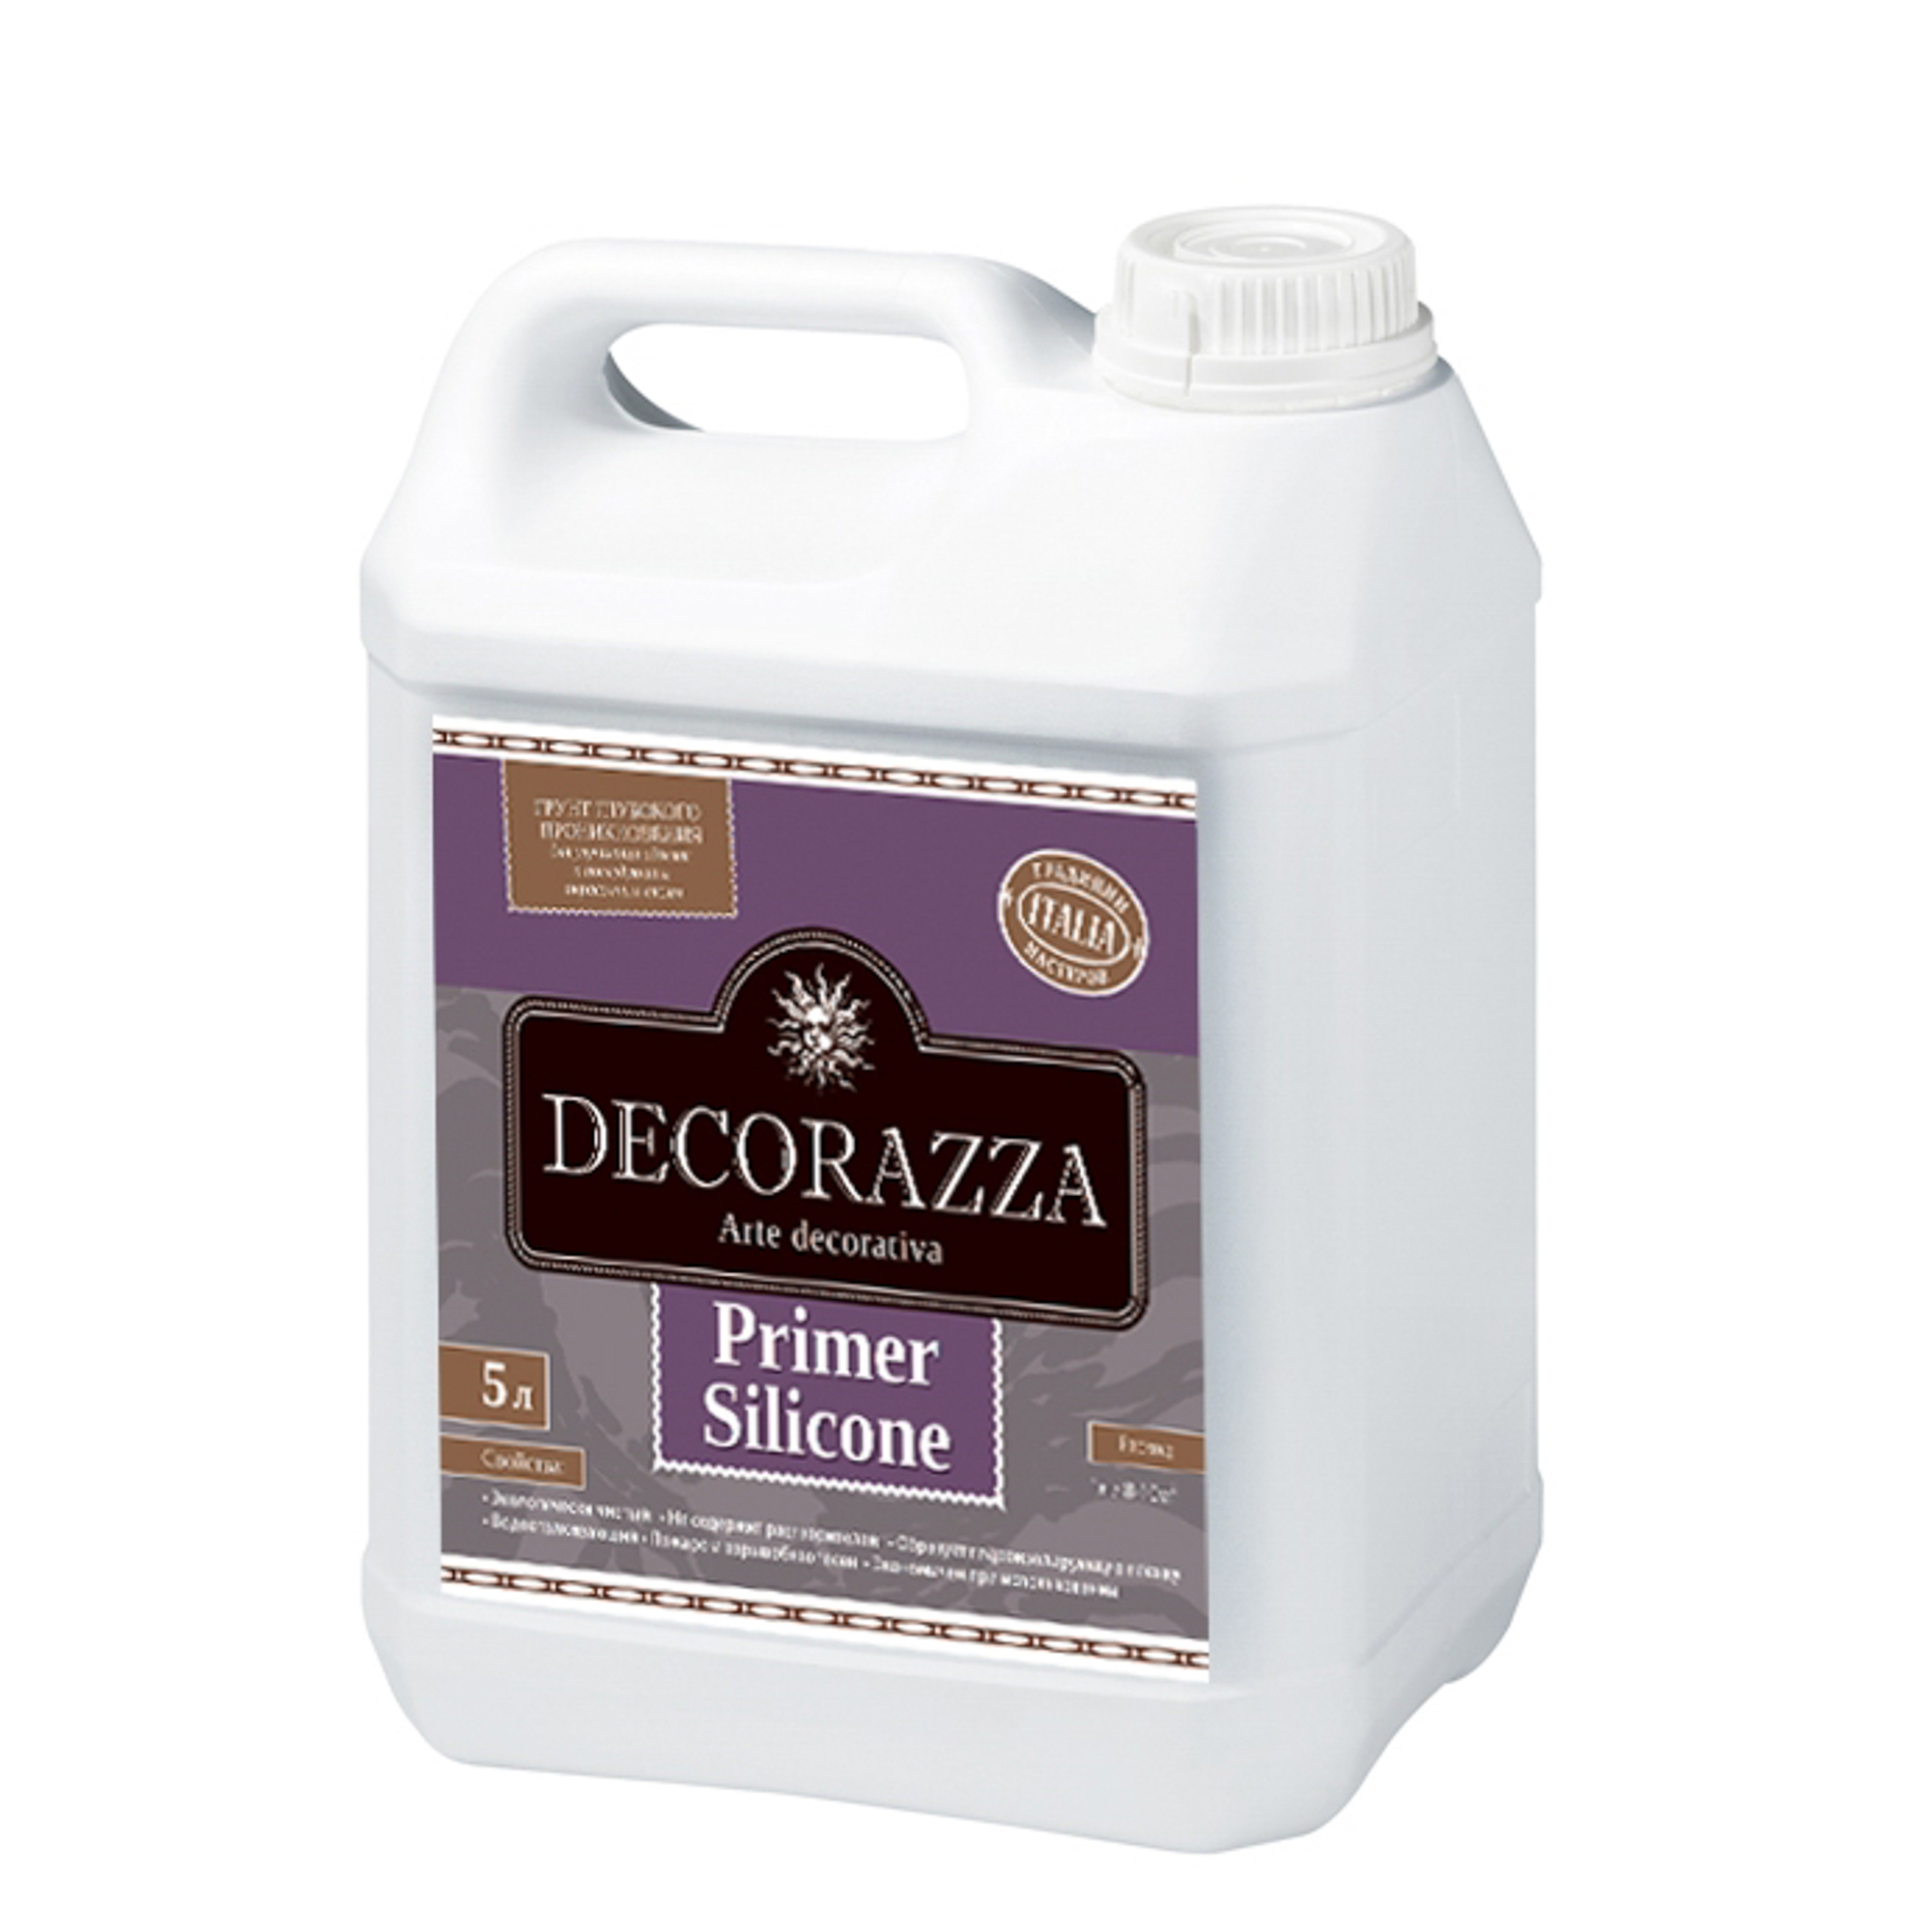 Грунтовка Decorazza Primer Silicone под Silideco 10 кг (DPRS-10)